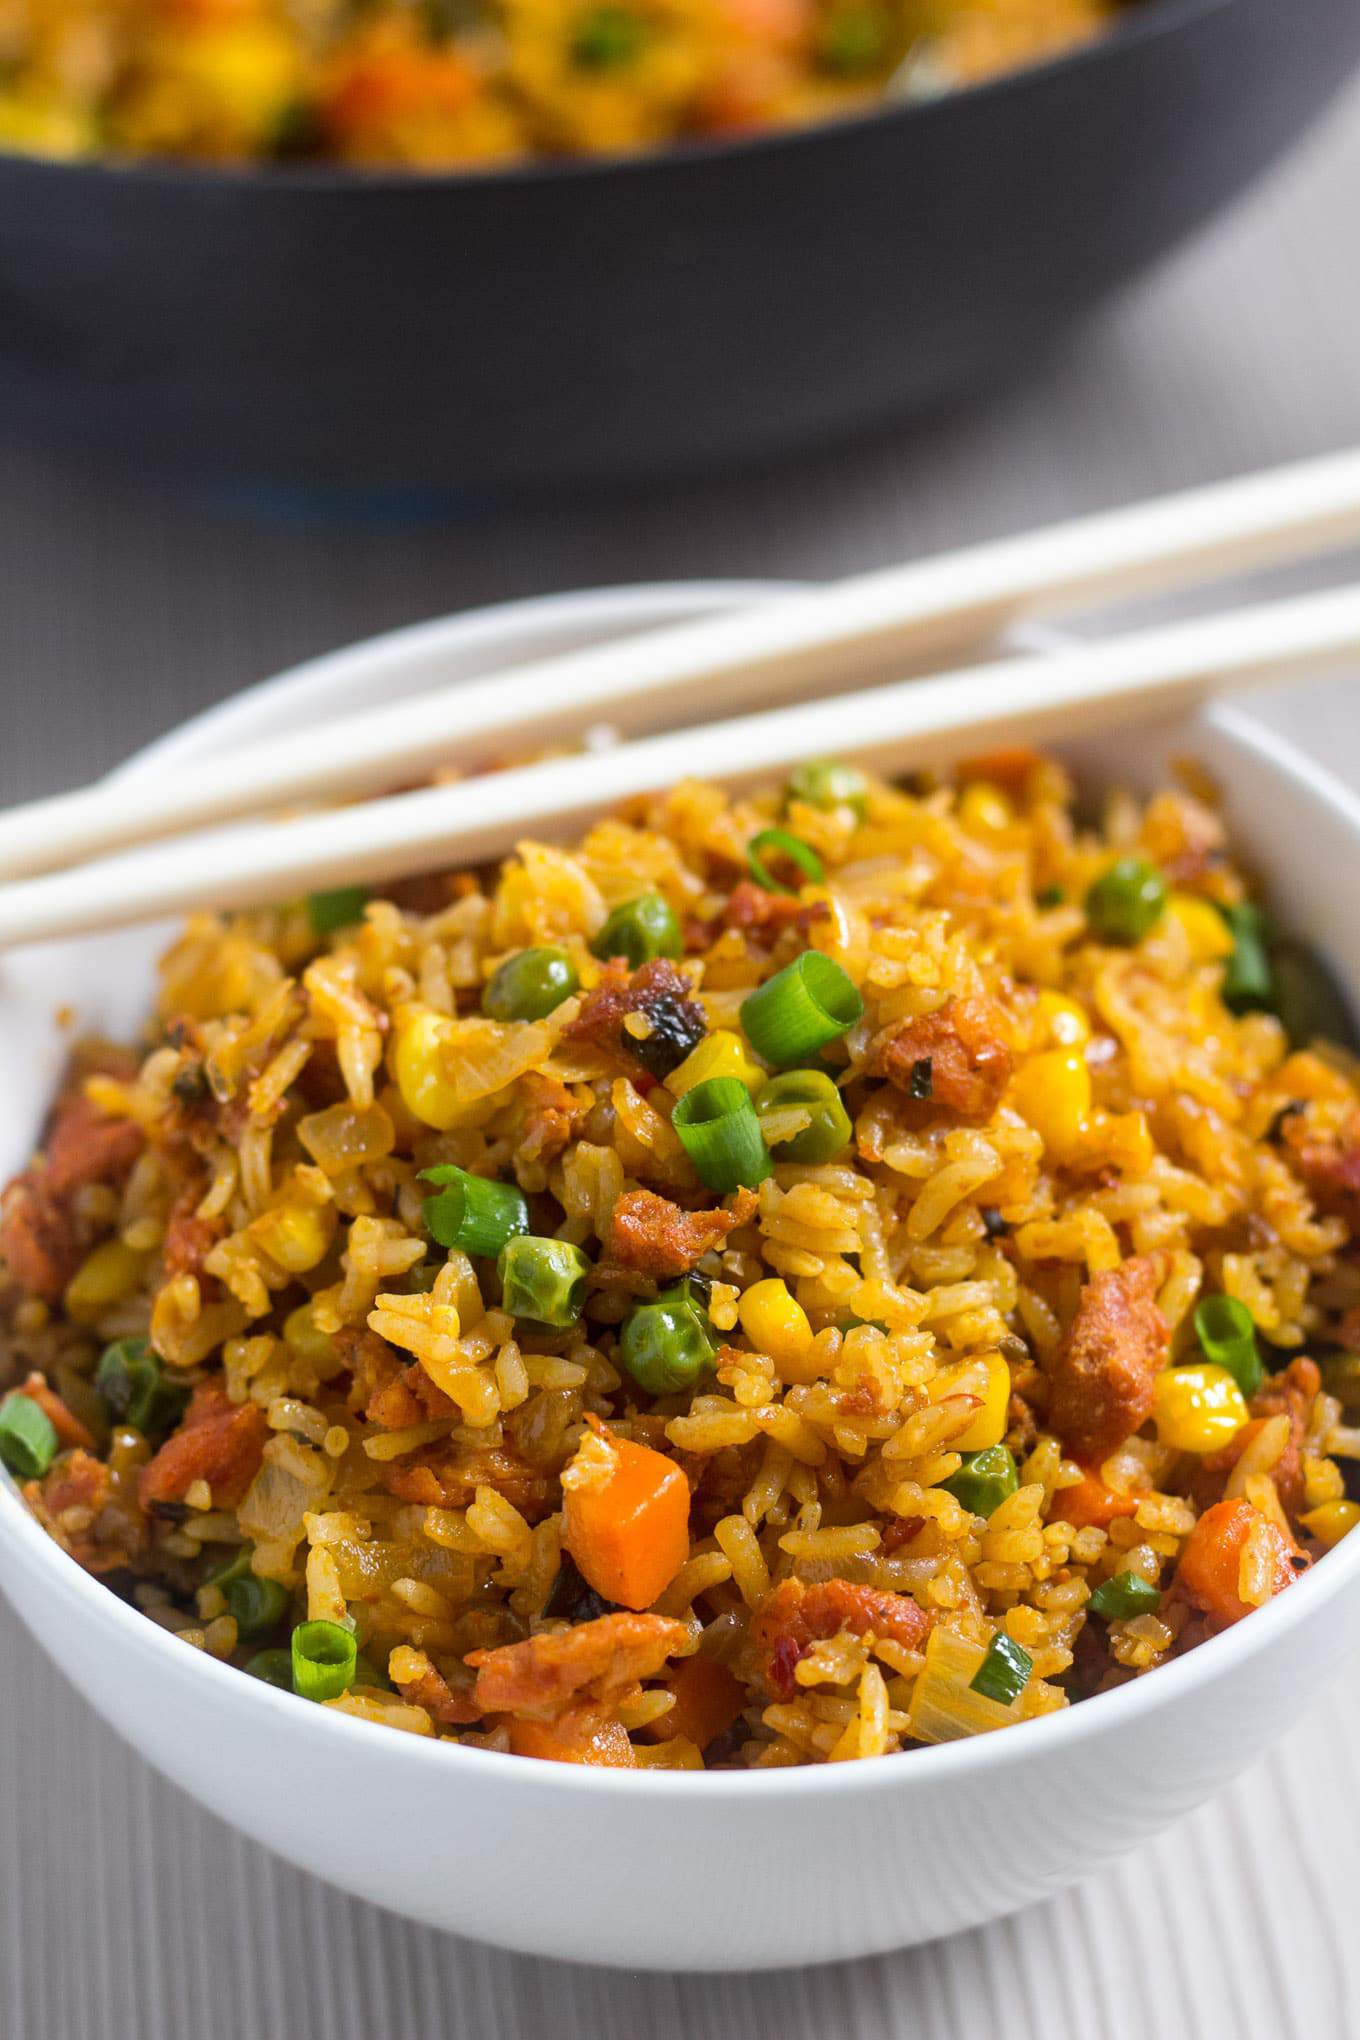 a bowl with fried rice and chop sticks on top.